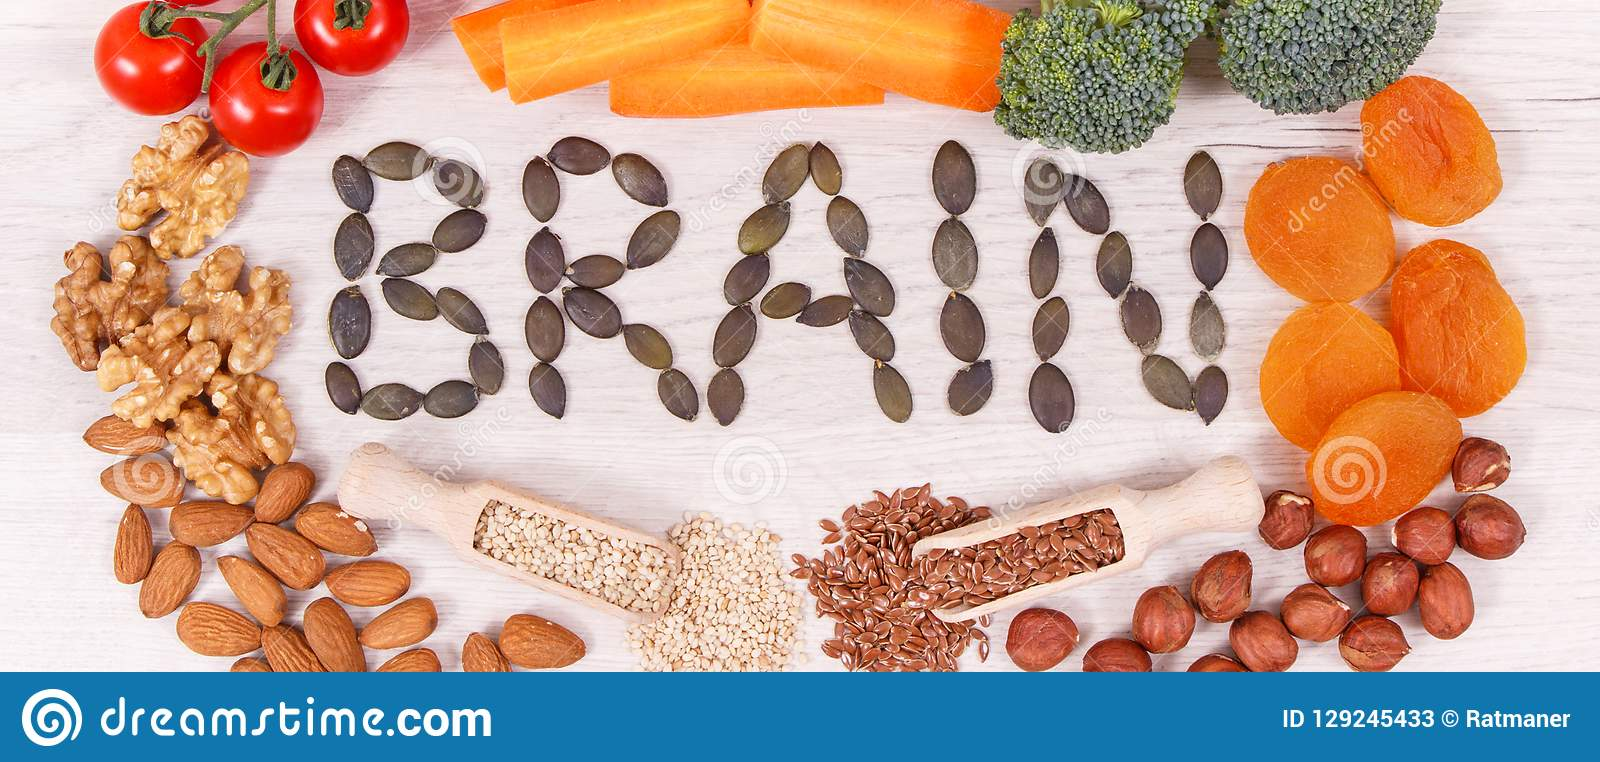 Inscription brain and best nutritious natural food for health and good memory